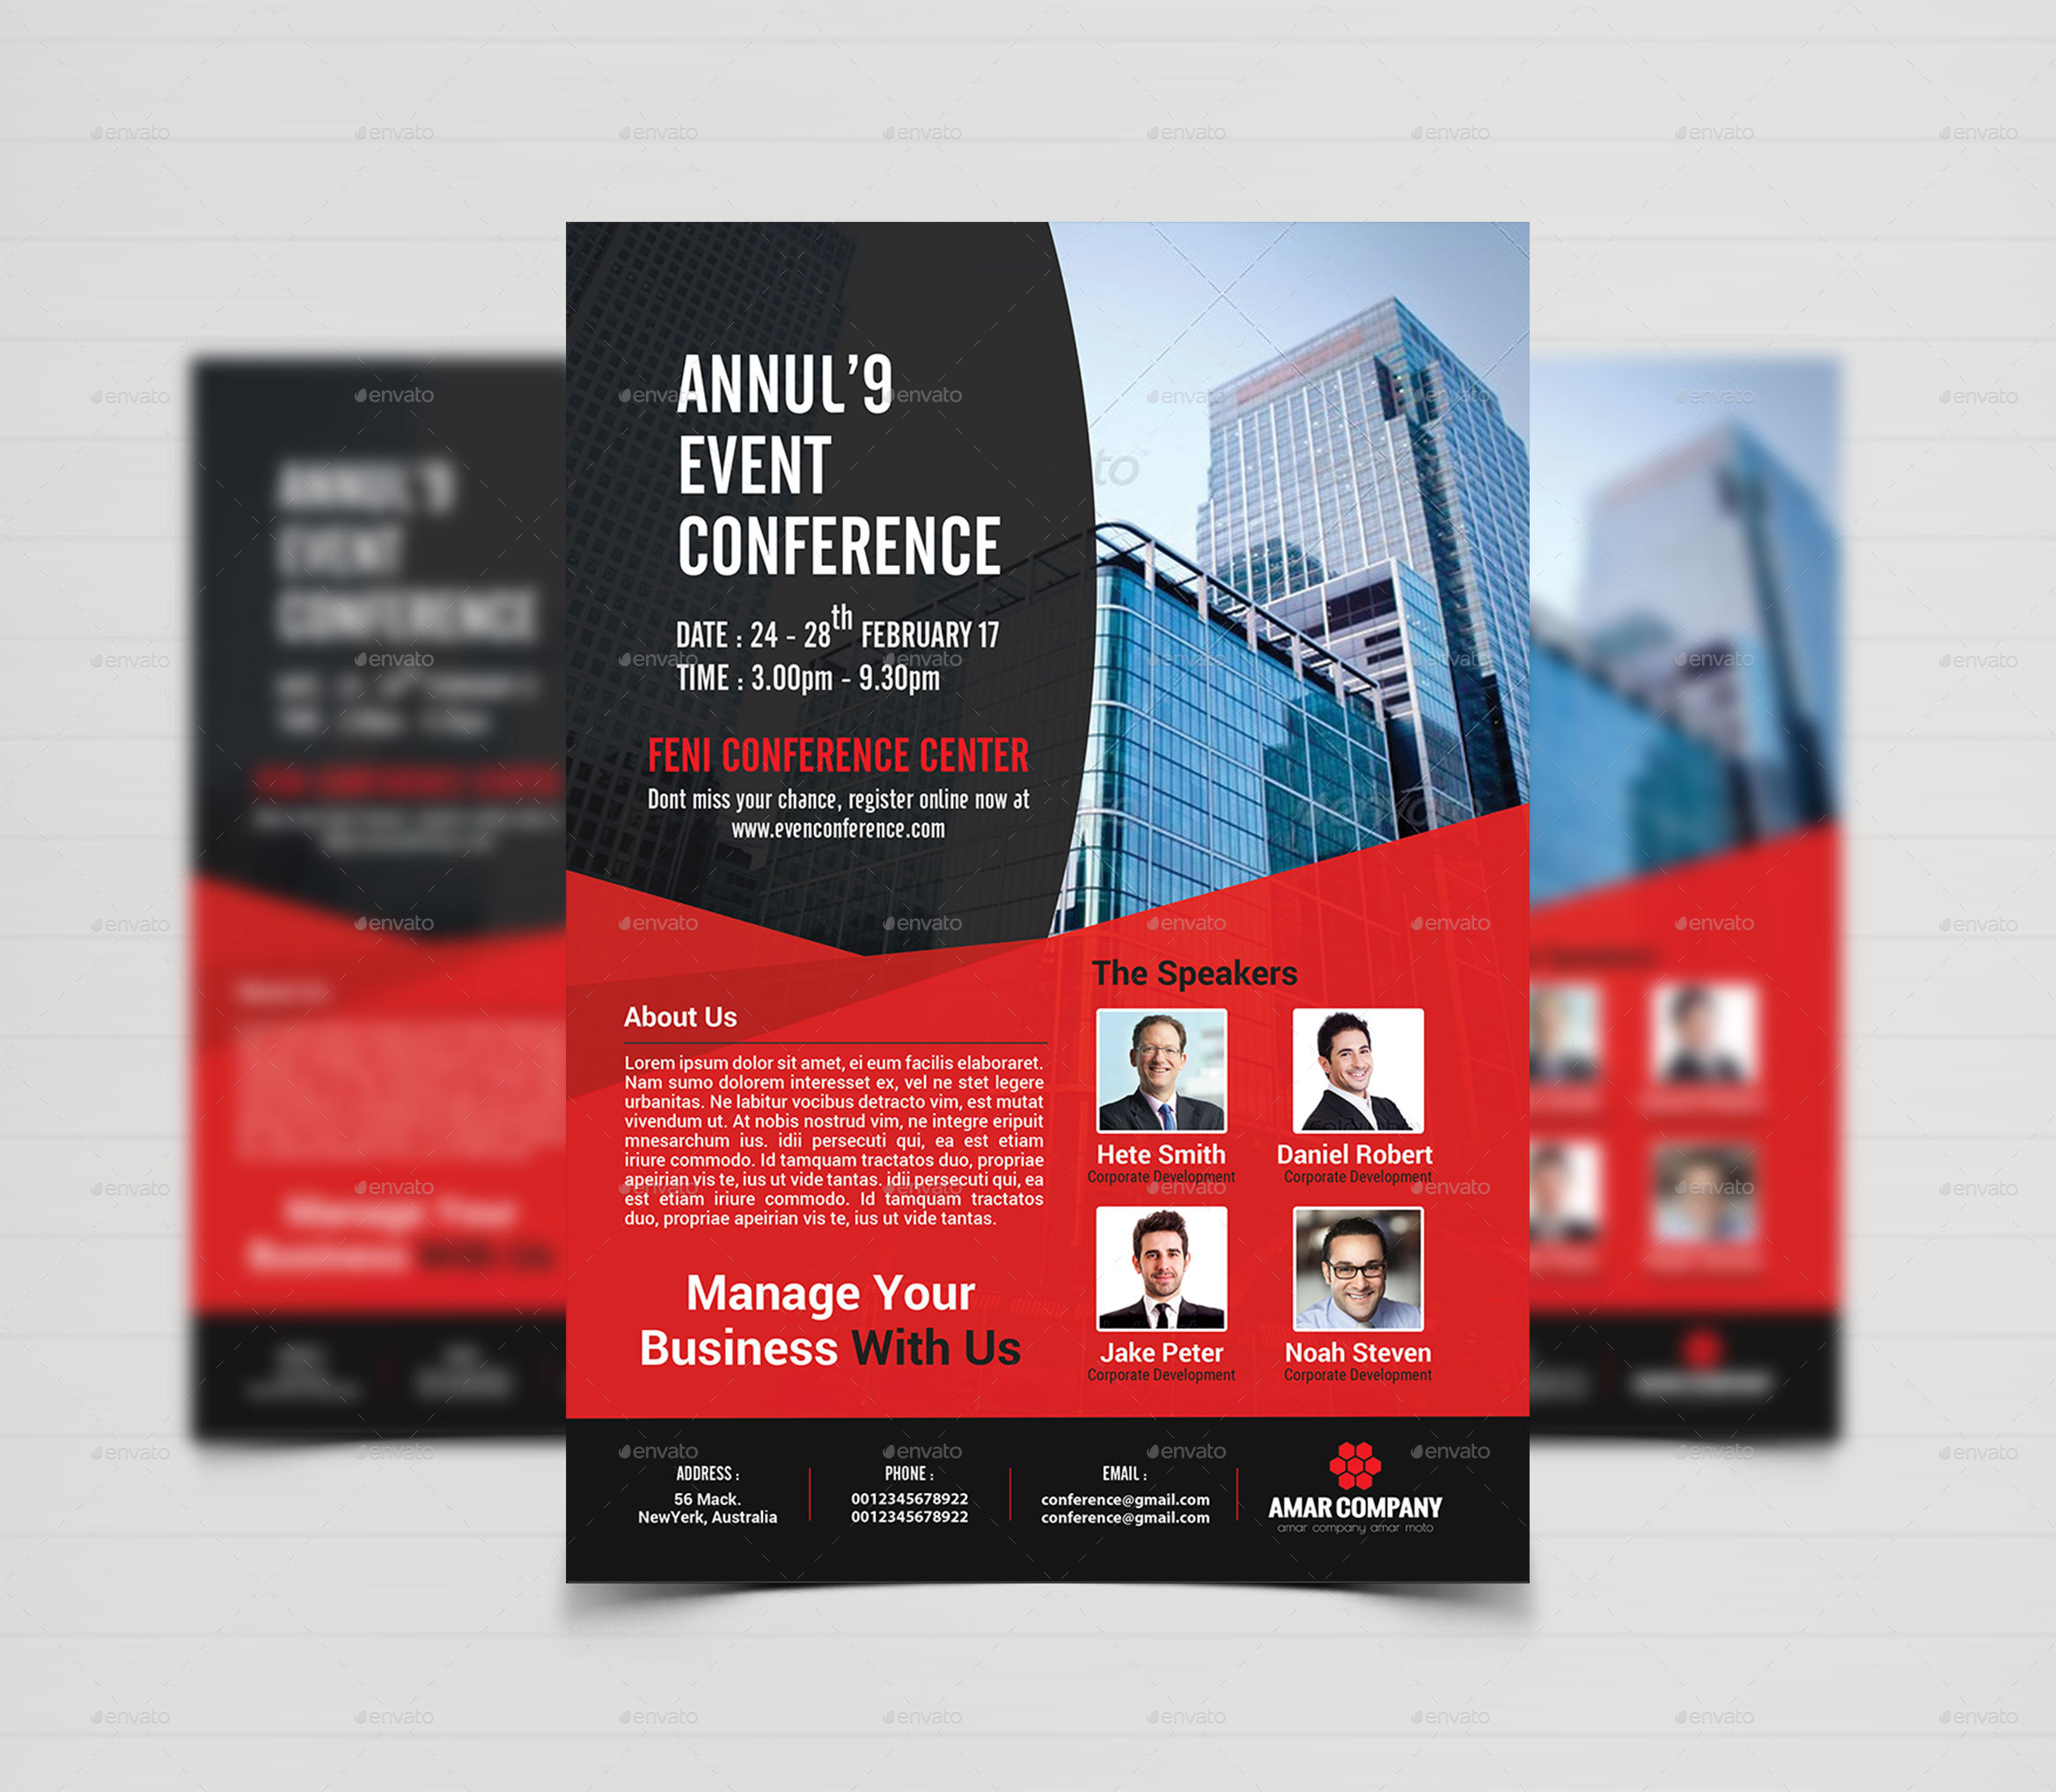 Event Summit Conference Flyer Template by Creative-Touch | GraphicRiver